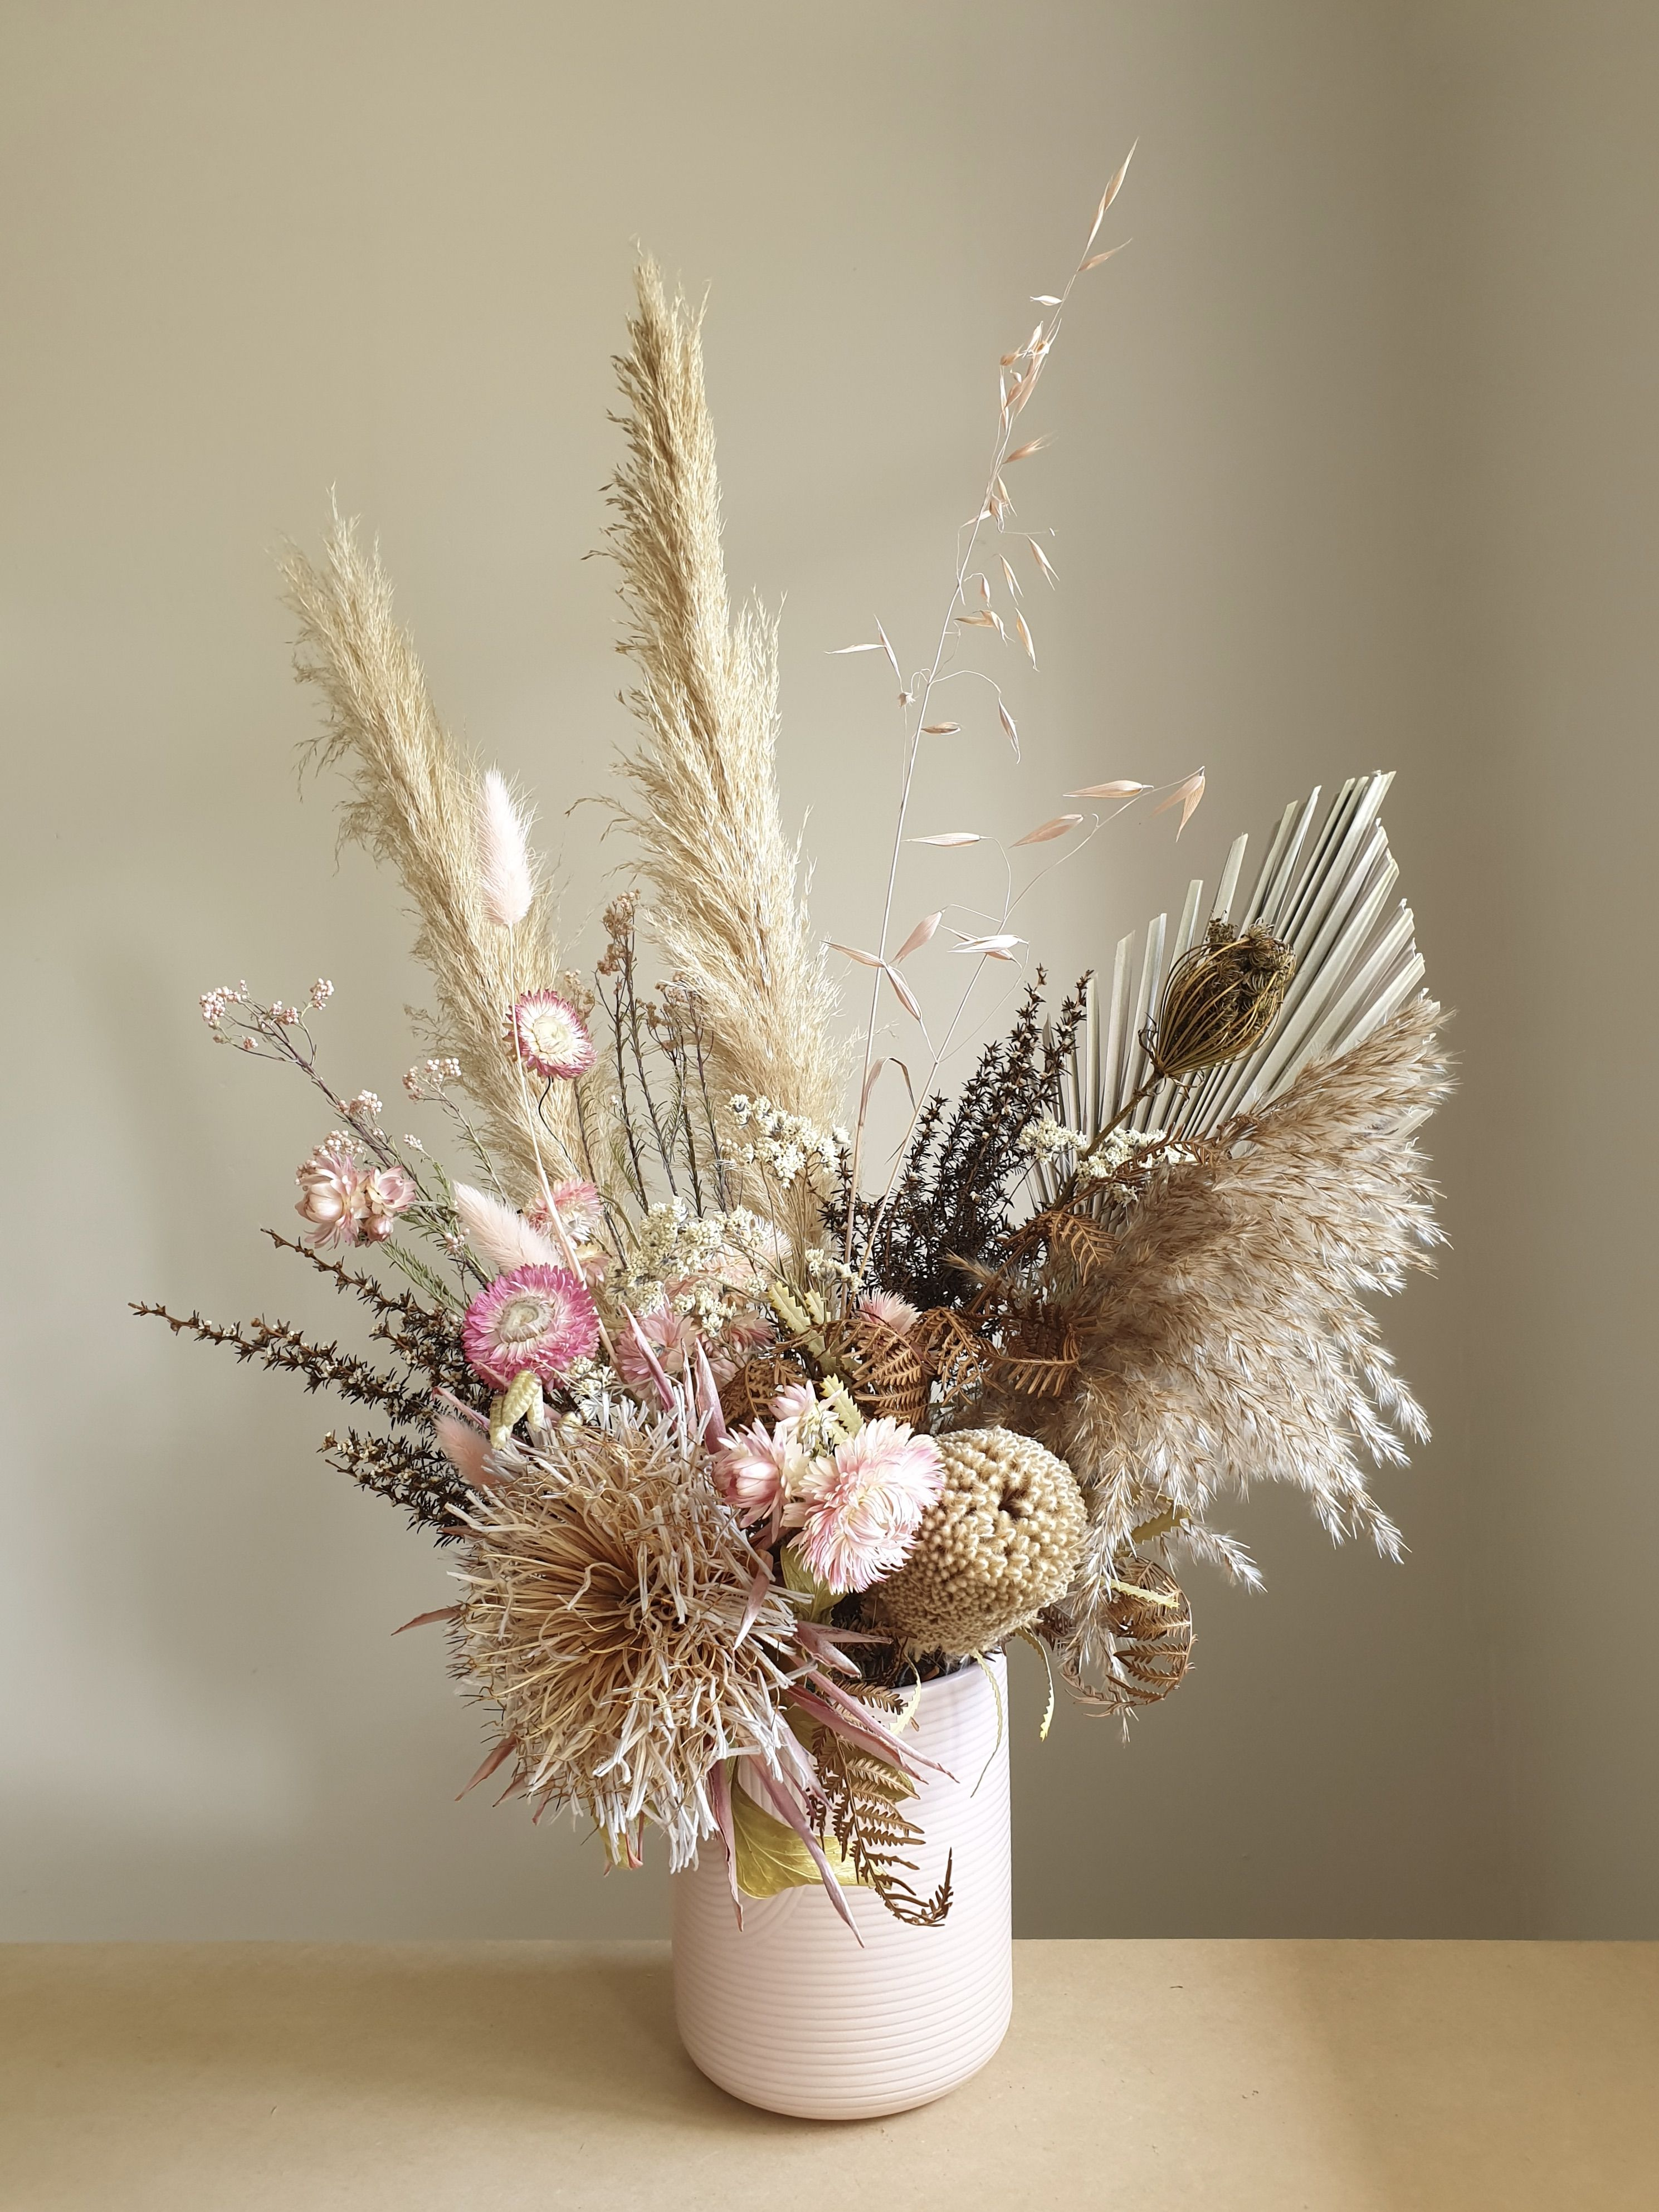 Dried Flower Arrangement With Pampas In 2020 Dried Flower Arrangements Rustic Flower Arrangements Flower Arrangements